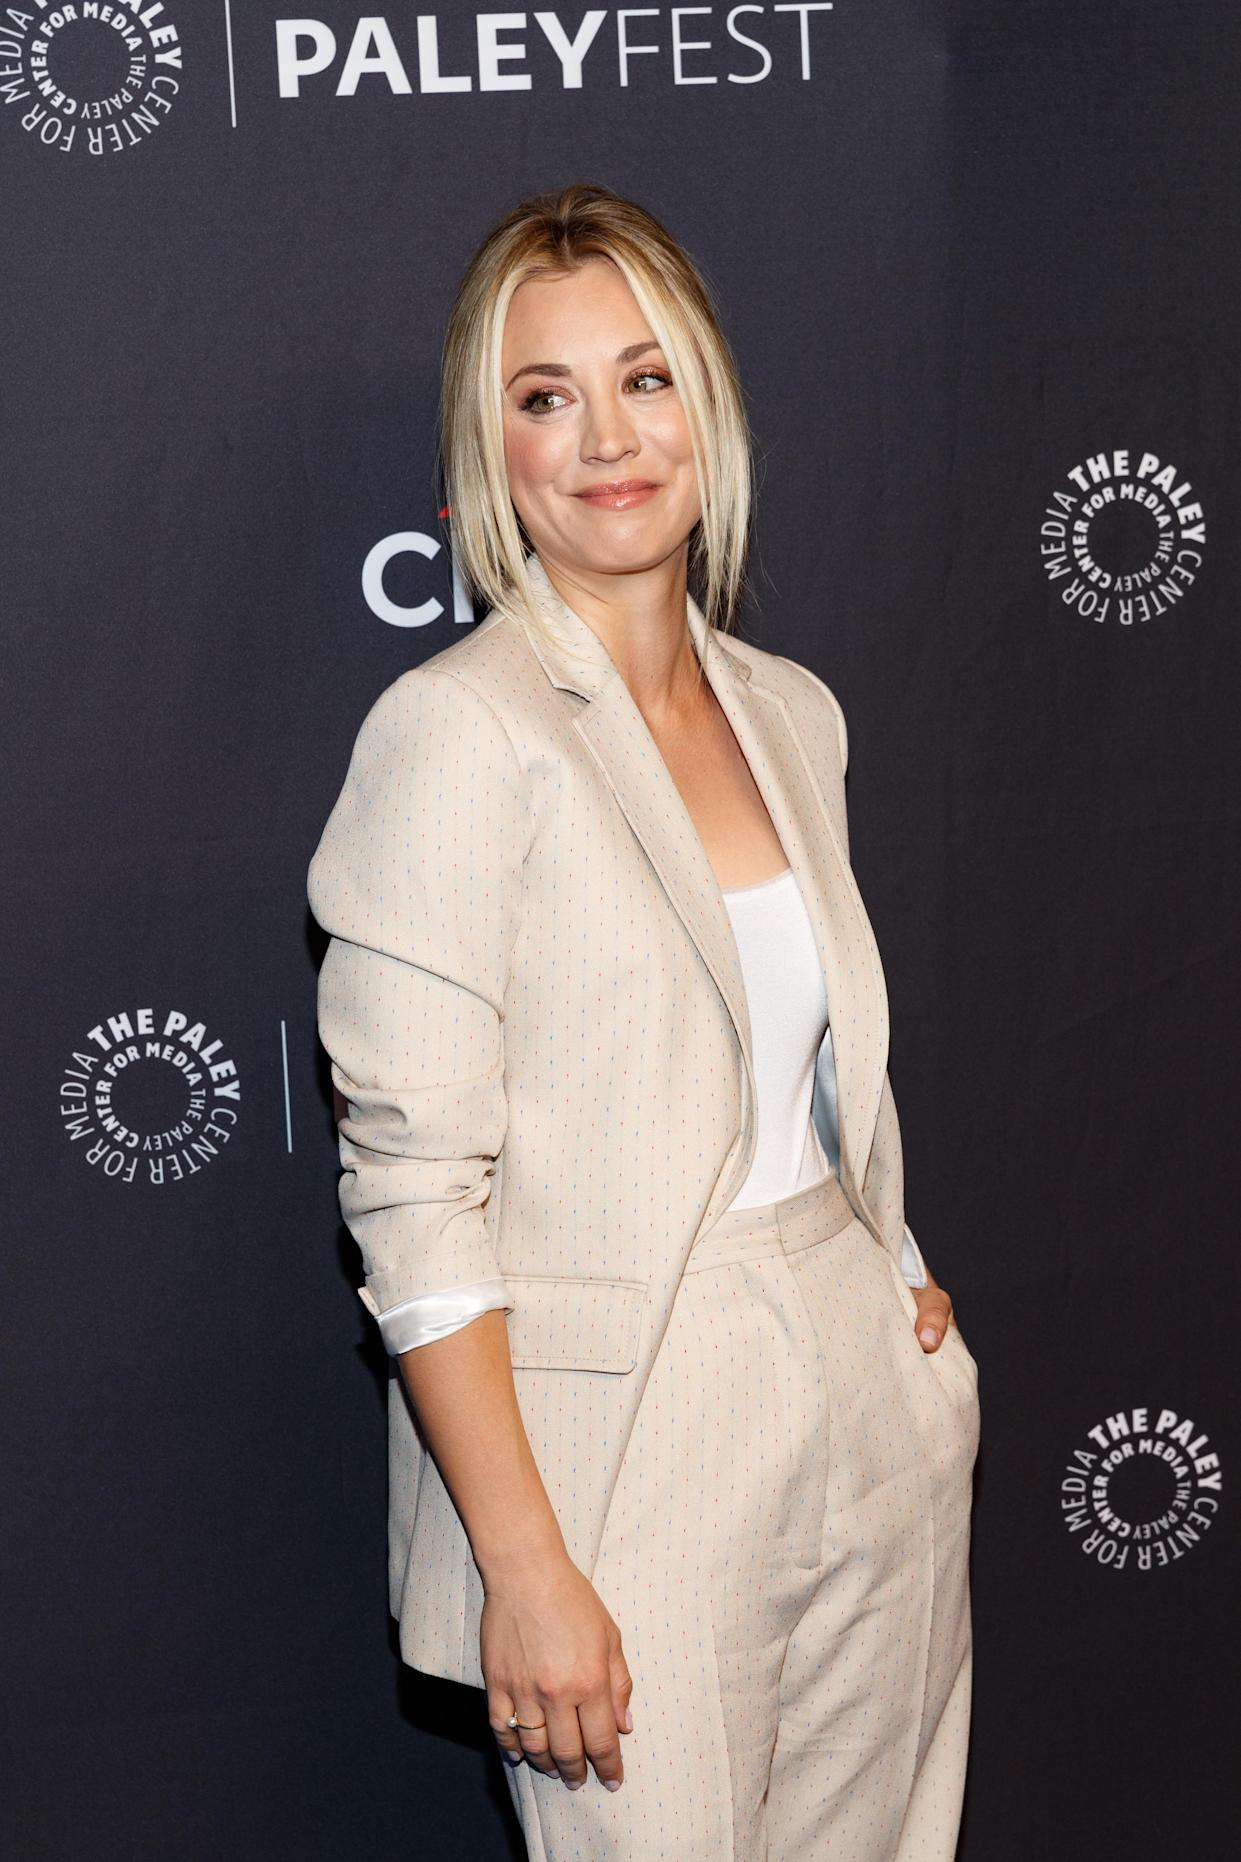 Kaley Cuoco suited up for PaleyFest. (Photo: Christopher Polk/Getty Images)